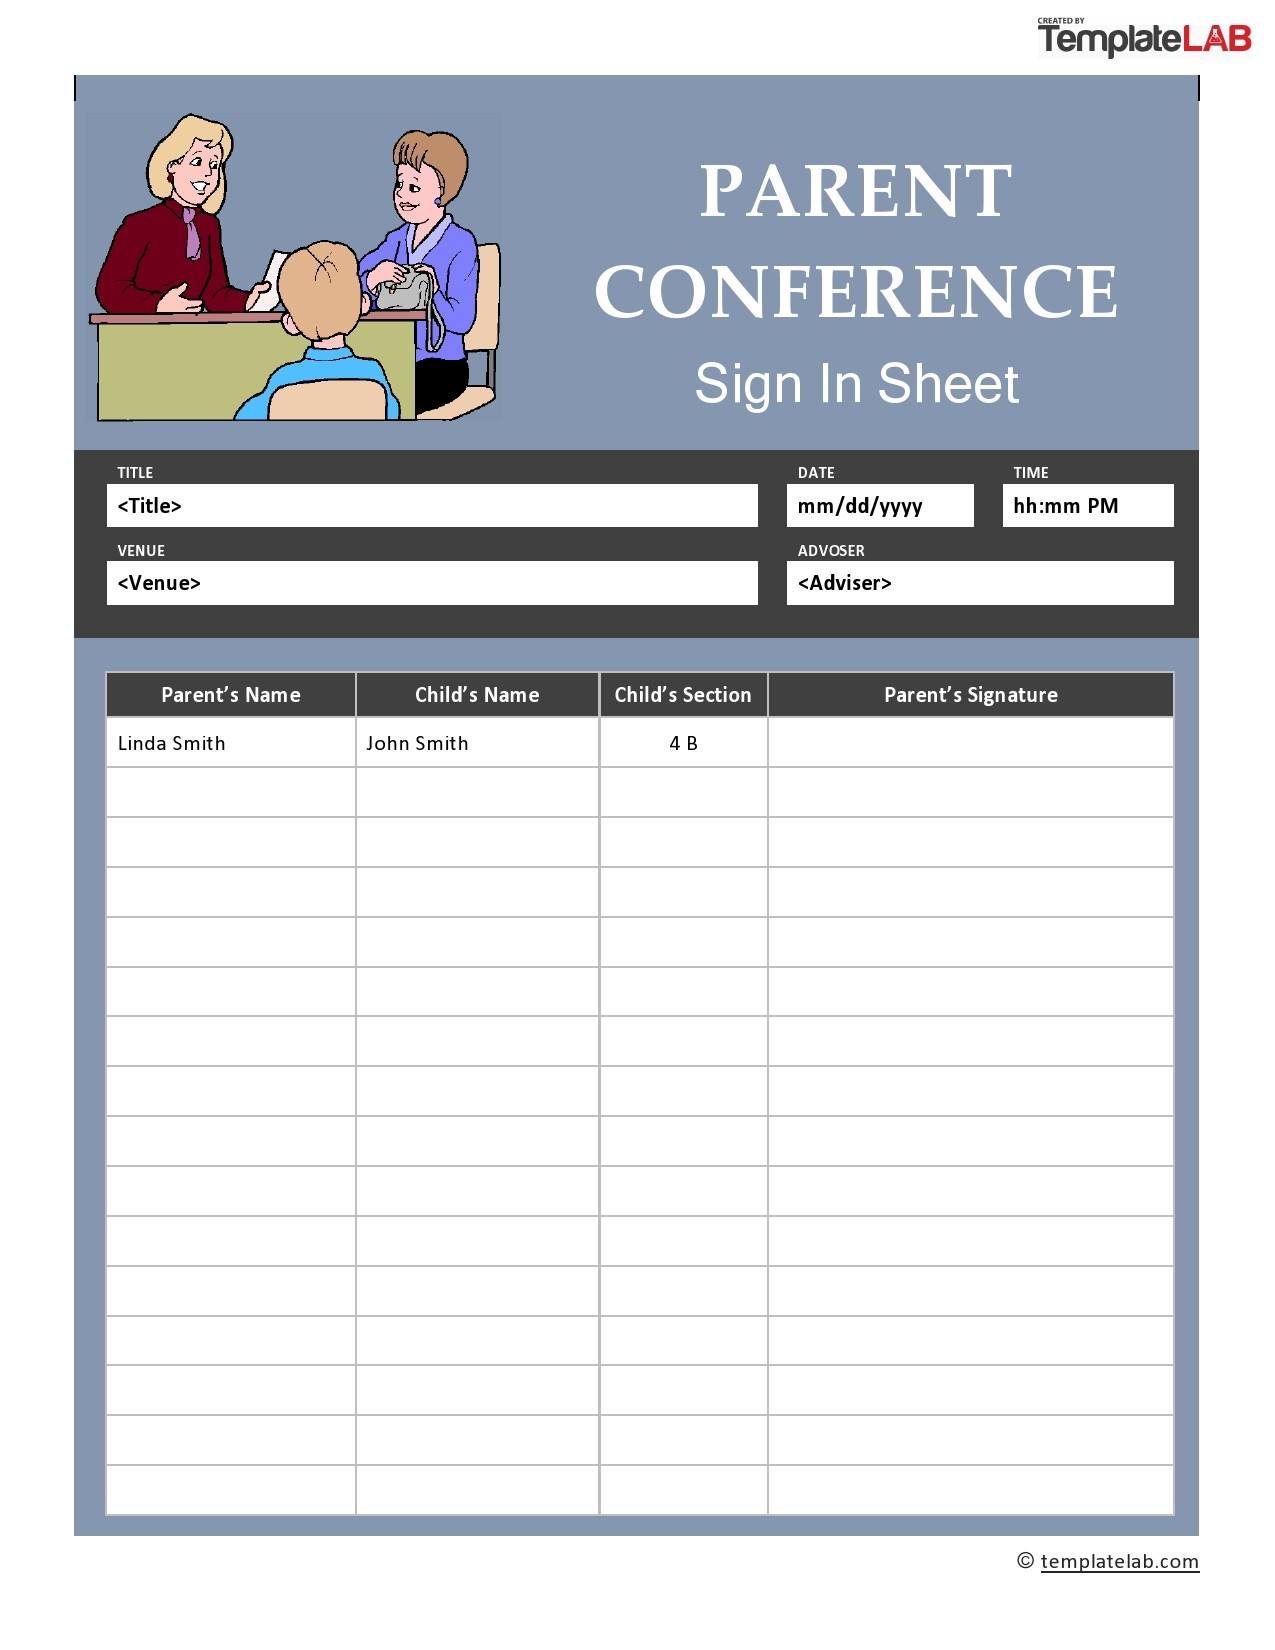 Free Parent Conference Sign In Sheet